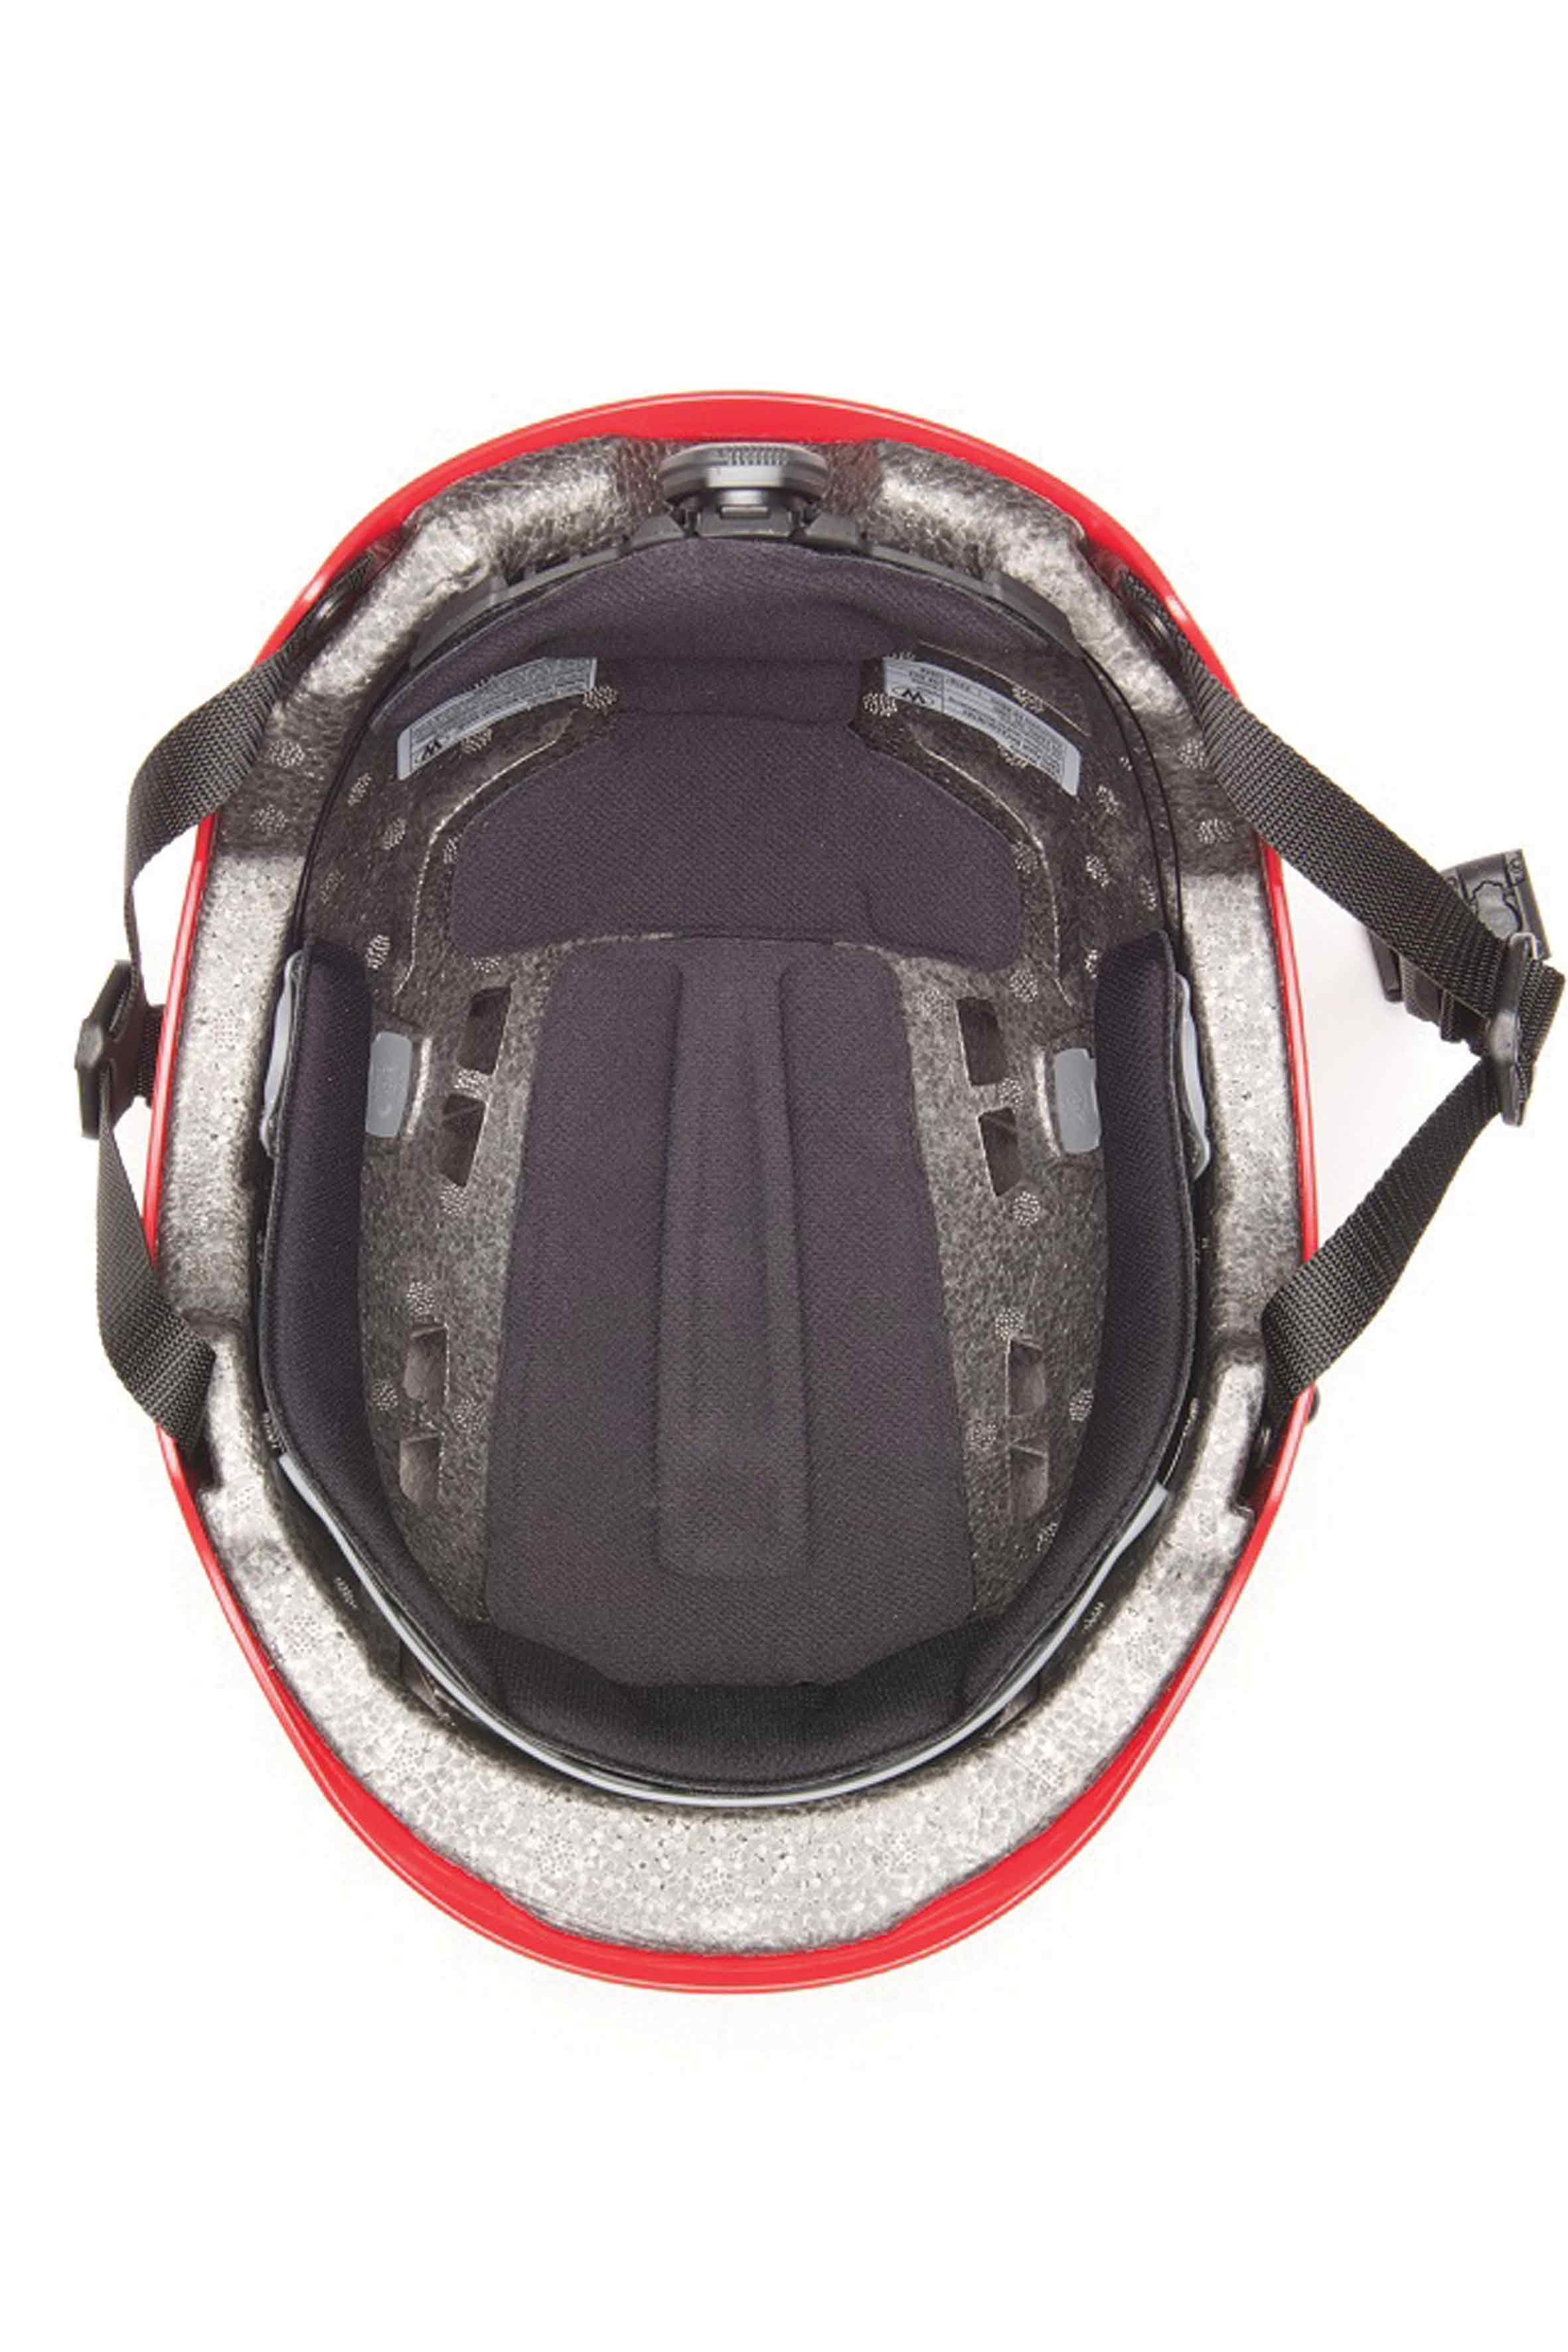 Exfil Sar Backcountry With Rails Safequip